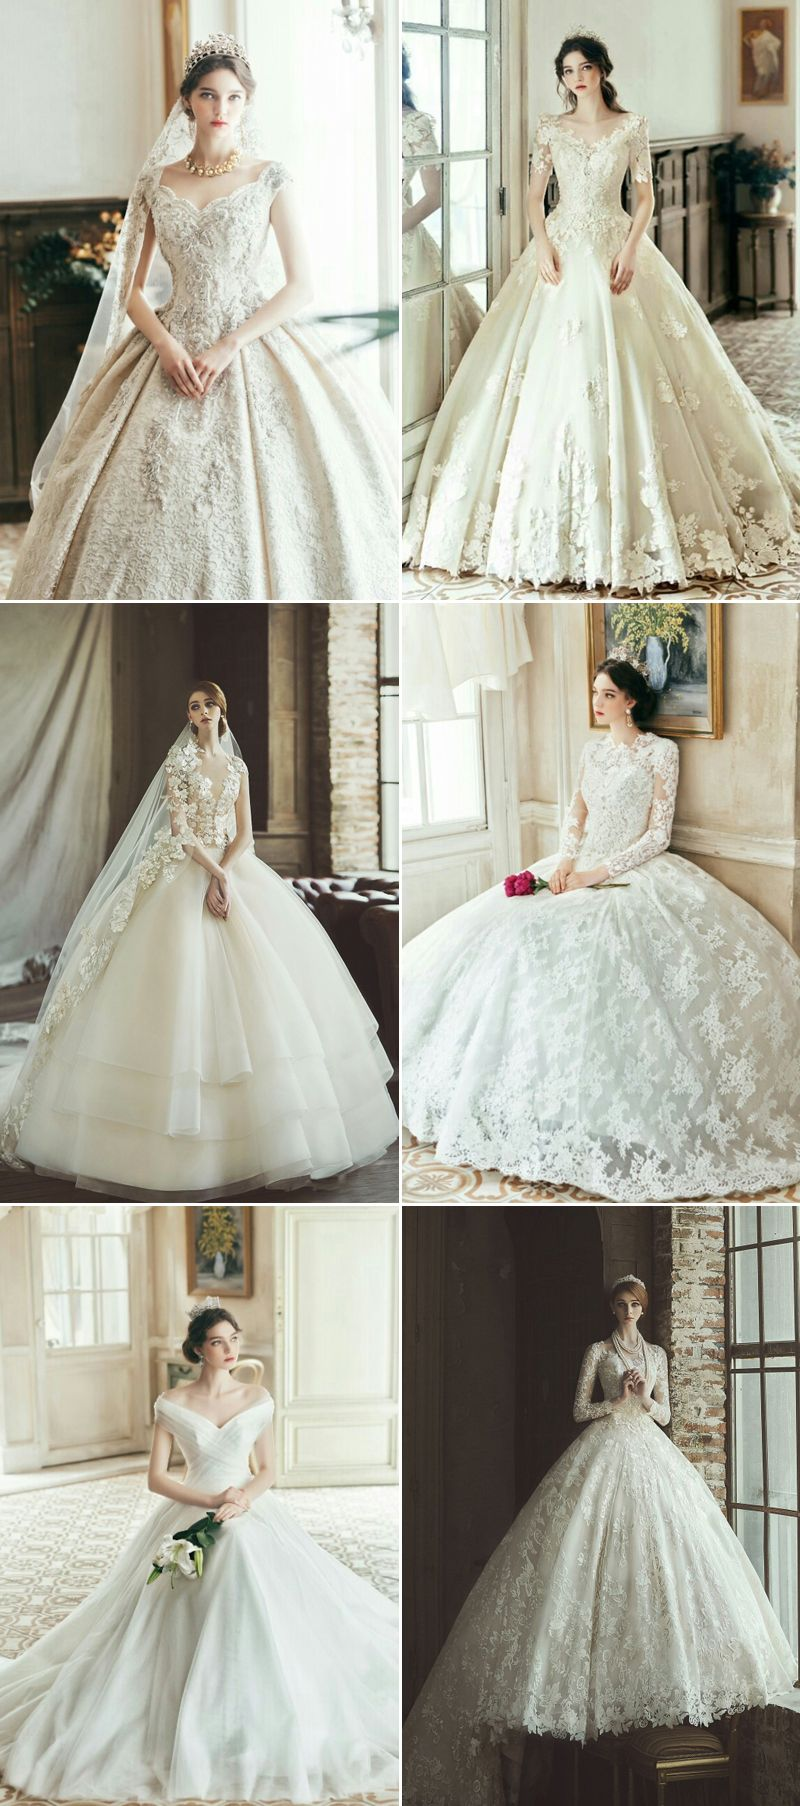 37 Jaw-Droppingly Beautiful Gowns for a Ballroom Wedding | Wedding ...